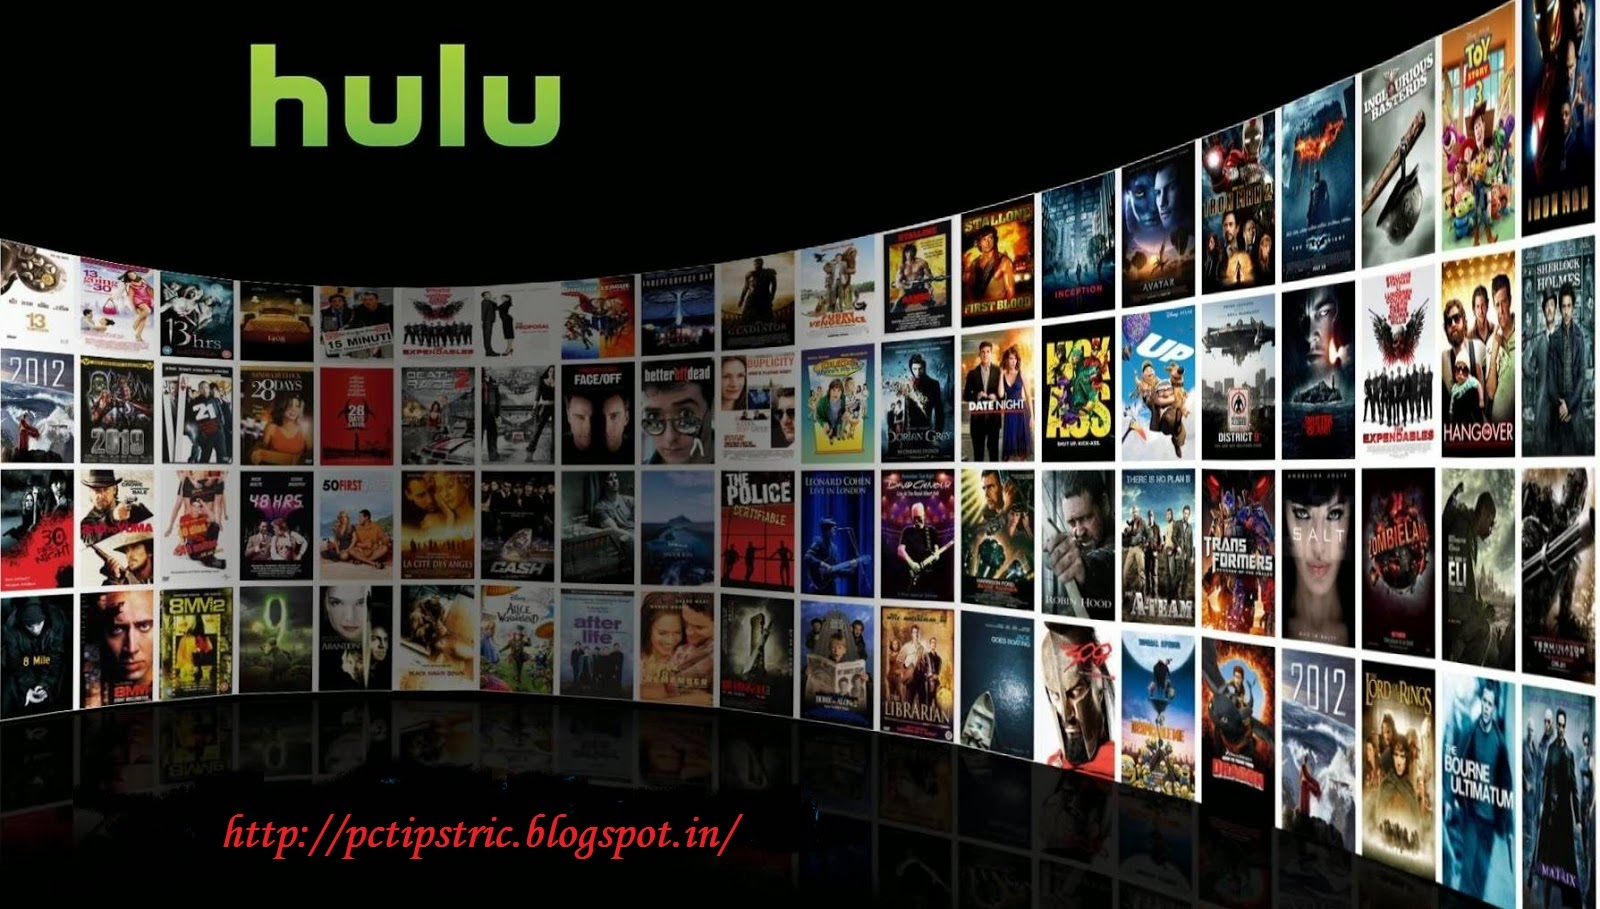 ... 10 Best Sites to Watch Movies Online for Free « Pc TiPs AnD TriCkS